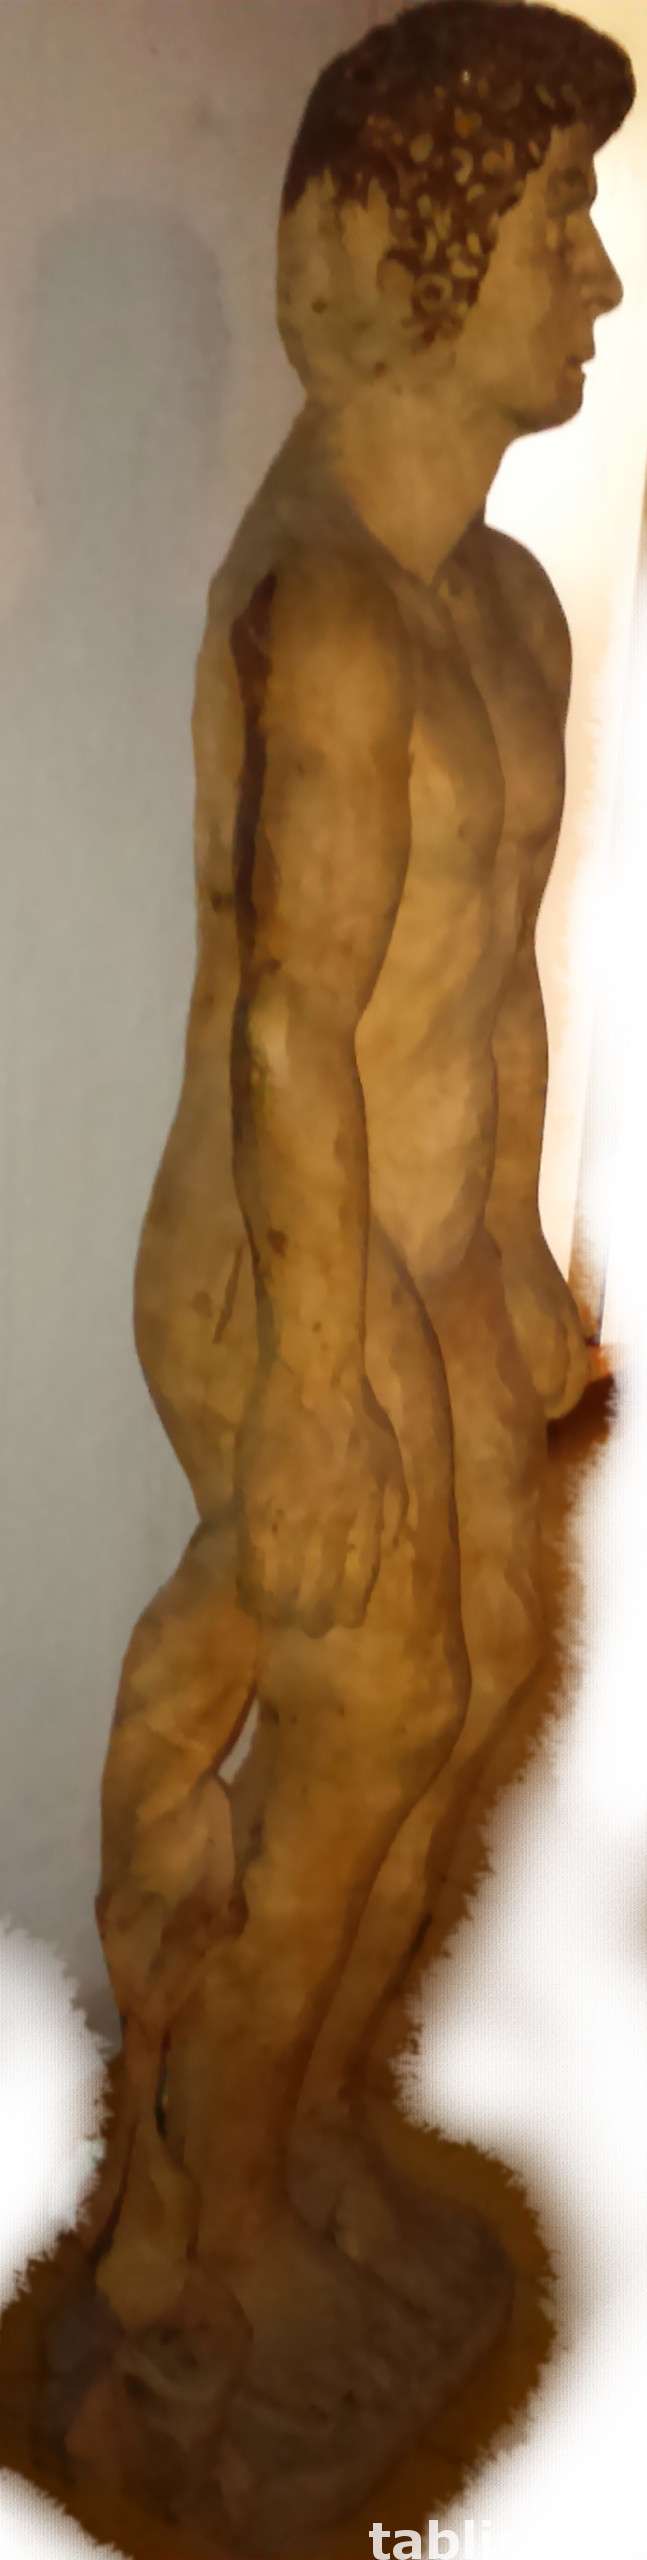 Sculpture: Staring Man - Solid Wood !!!  4